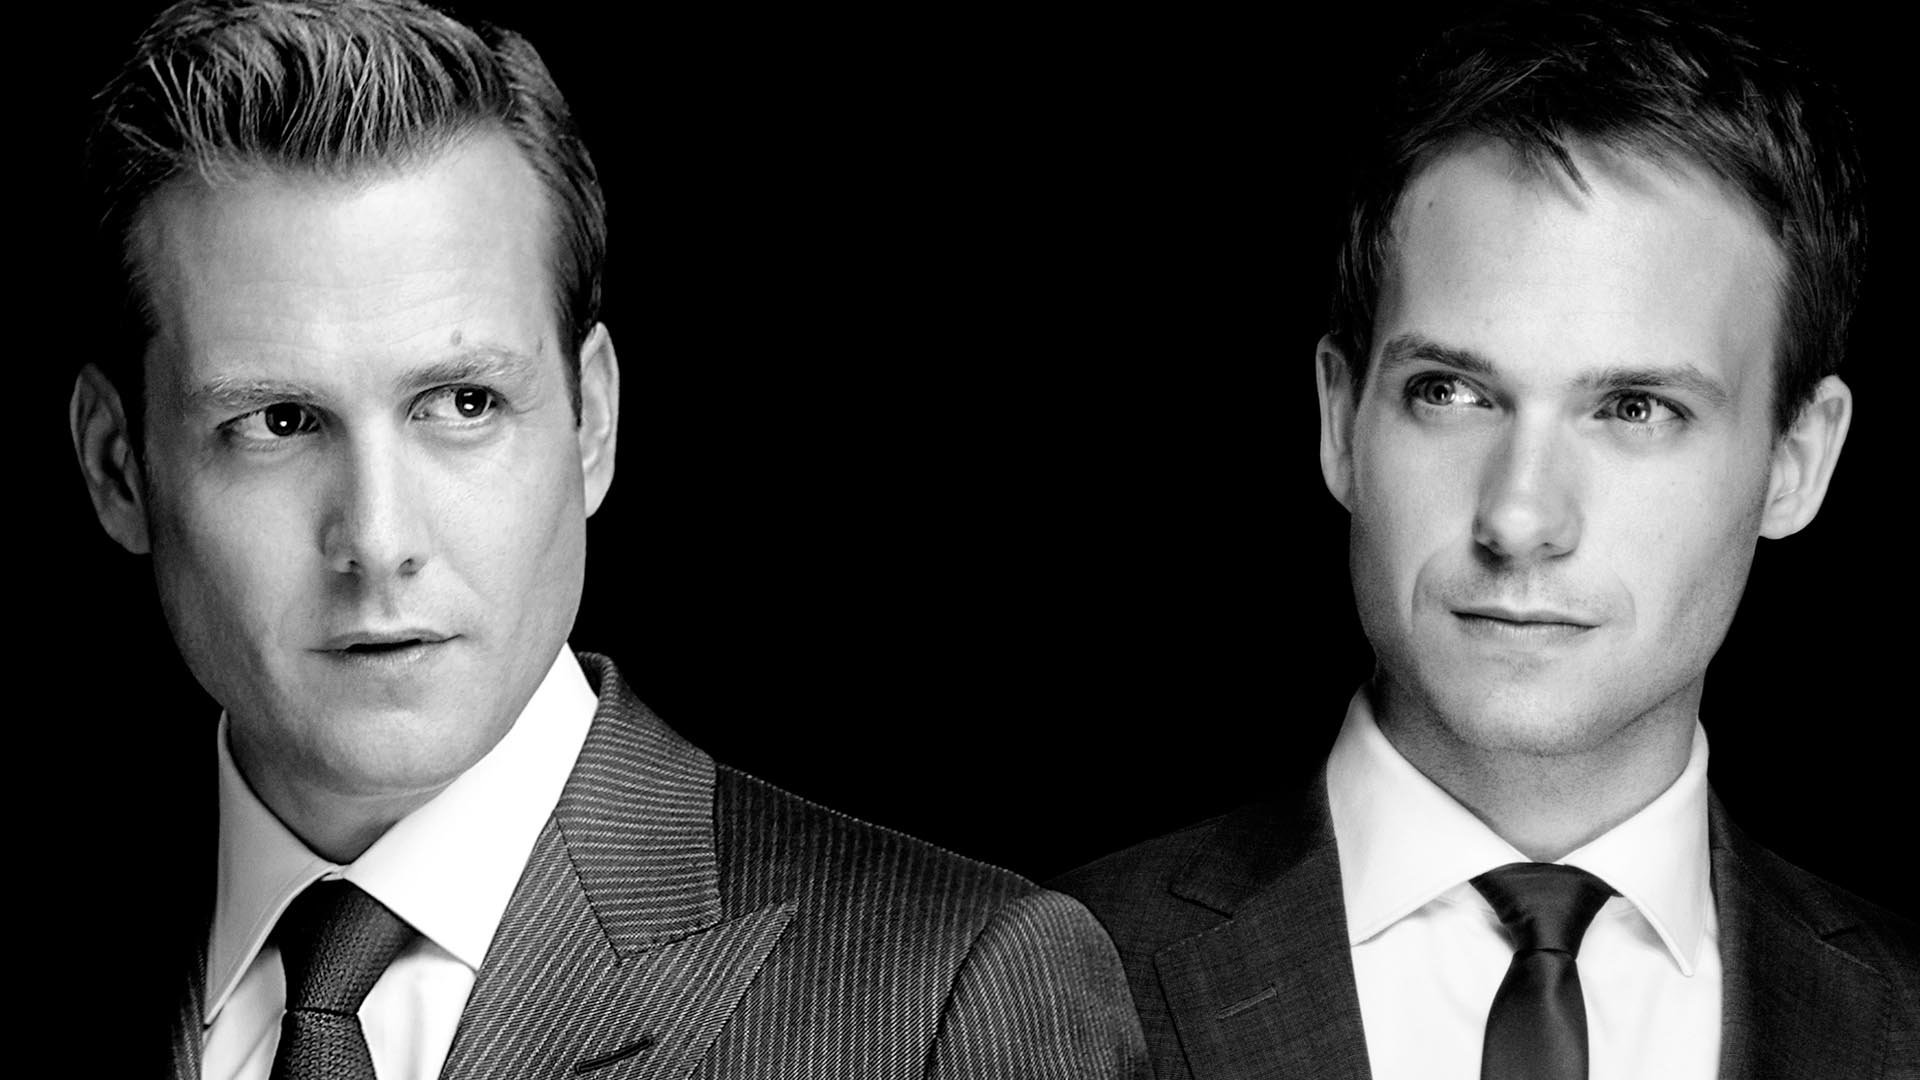 suits wallpapers 1920x1080 full hd 1080p desktop backgrounds